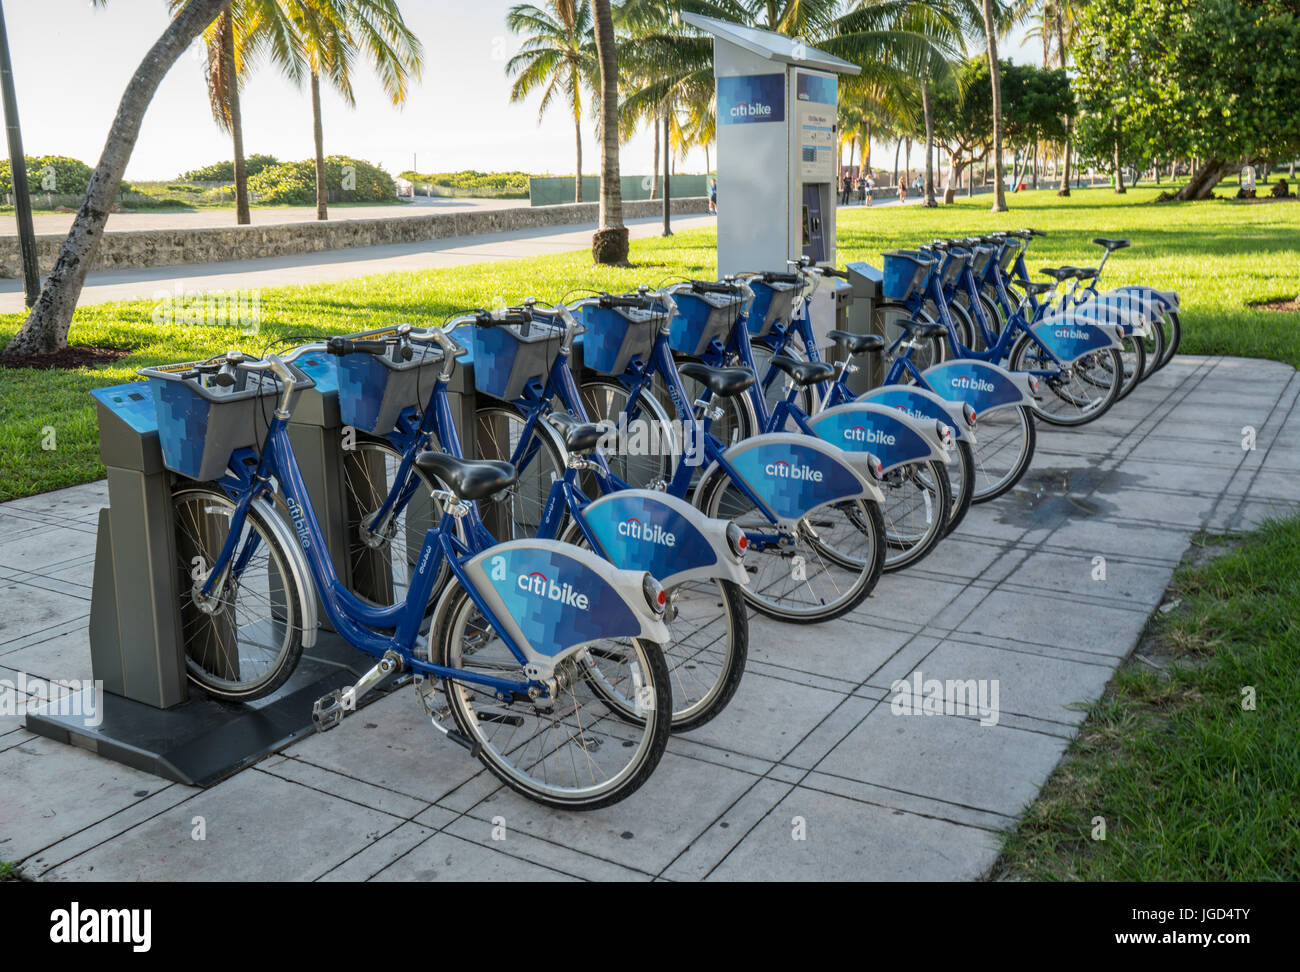 Citi Bike Miami >> Citibike Miami Stock Photos Citibike Miami Stock Images Alamy